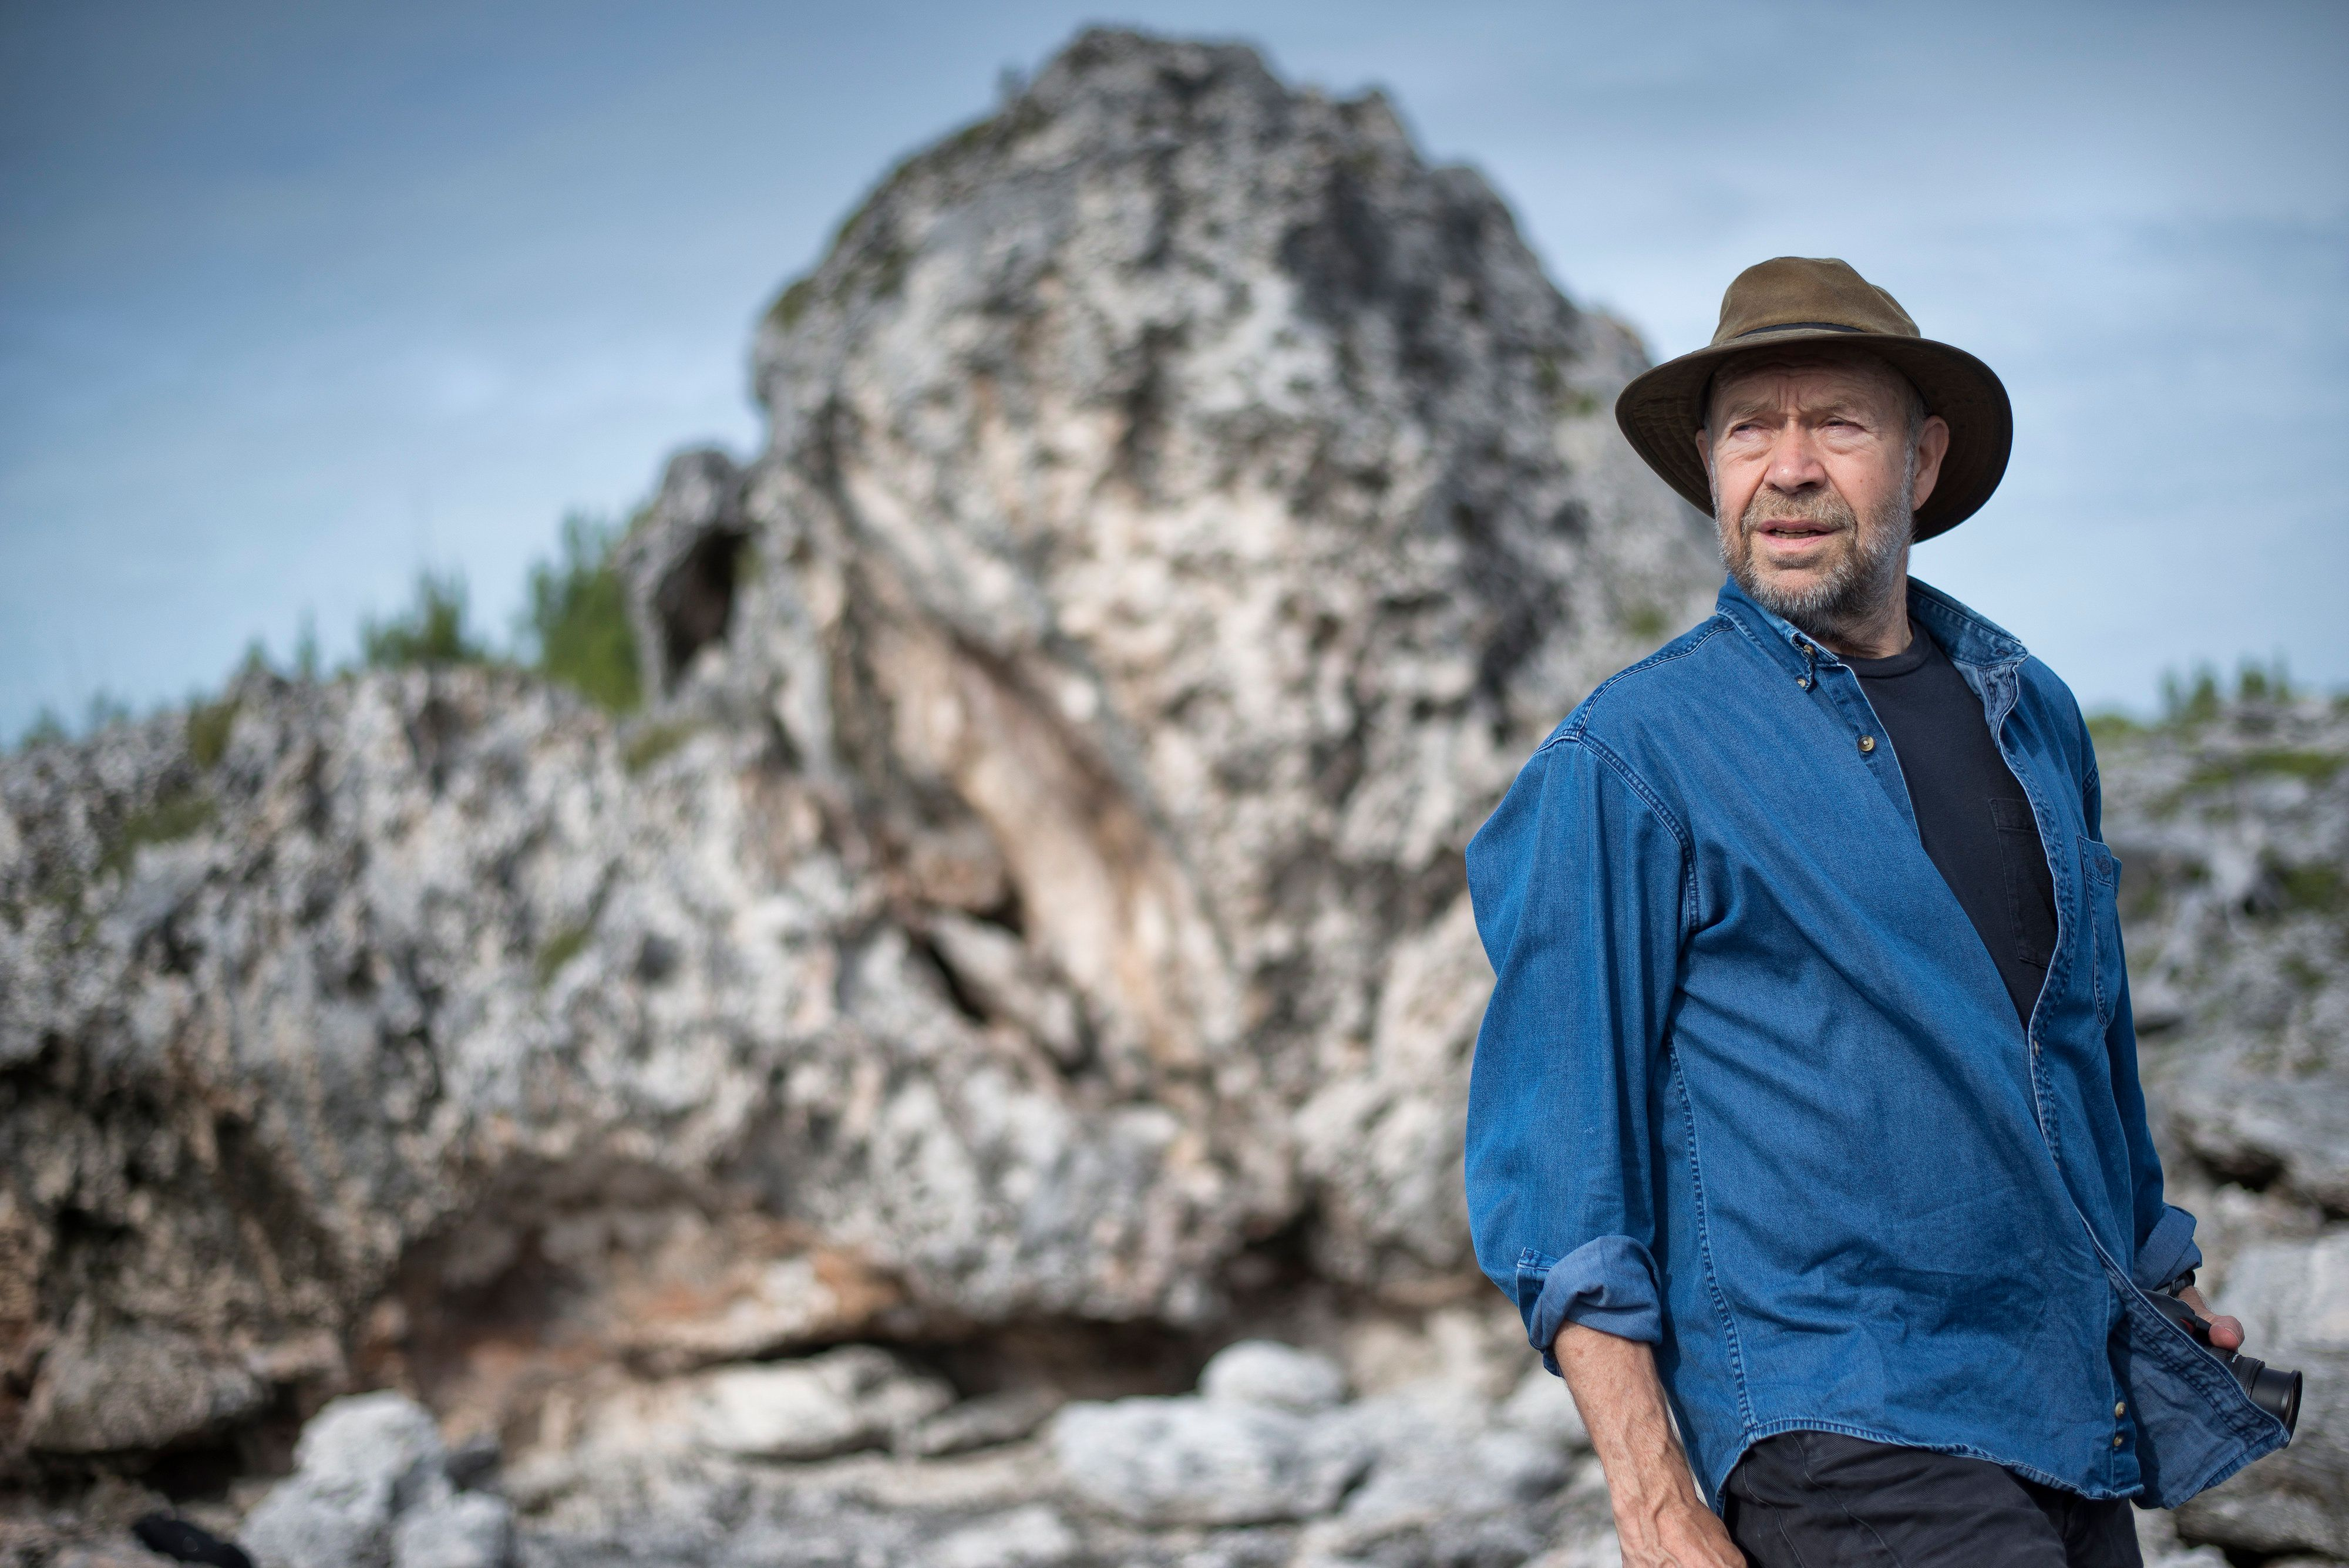 GREGORY TOWN, BAHAMAS - NOVEMBER 22: World renowned climatologist James Hansen on the Eleuthera coastal ridge on November 22, 2015 in Eleuthera, Bahamas. The theory put out by Paul Hearty, a coastal geologist at the University of North Carolina at Wilmington is that the massive boulders was catapulted onto land by a series of intense storms. The boulders now sit delicately perched on the coastal ridge in North Eleuthera. (Photos by Charles Ommanney/The Washington Post via Getty Images)